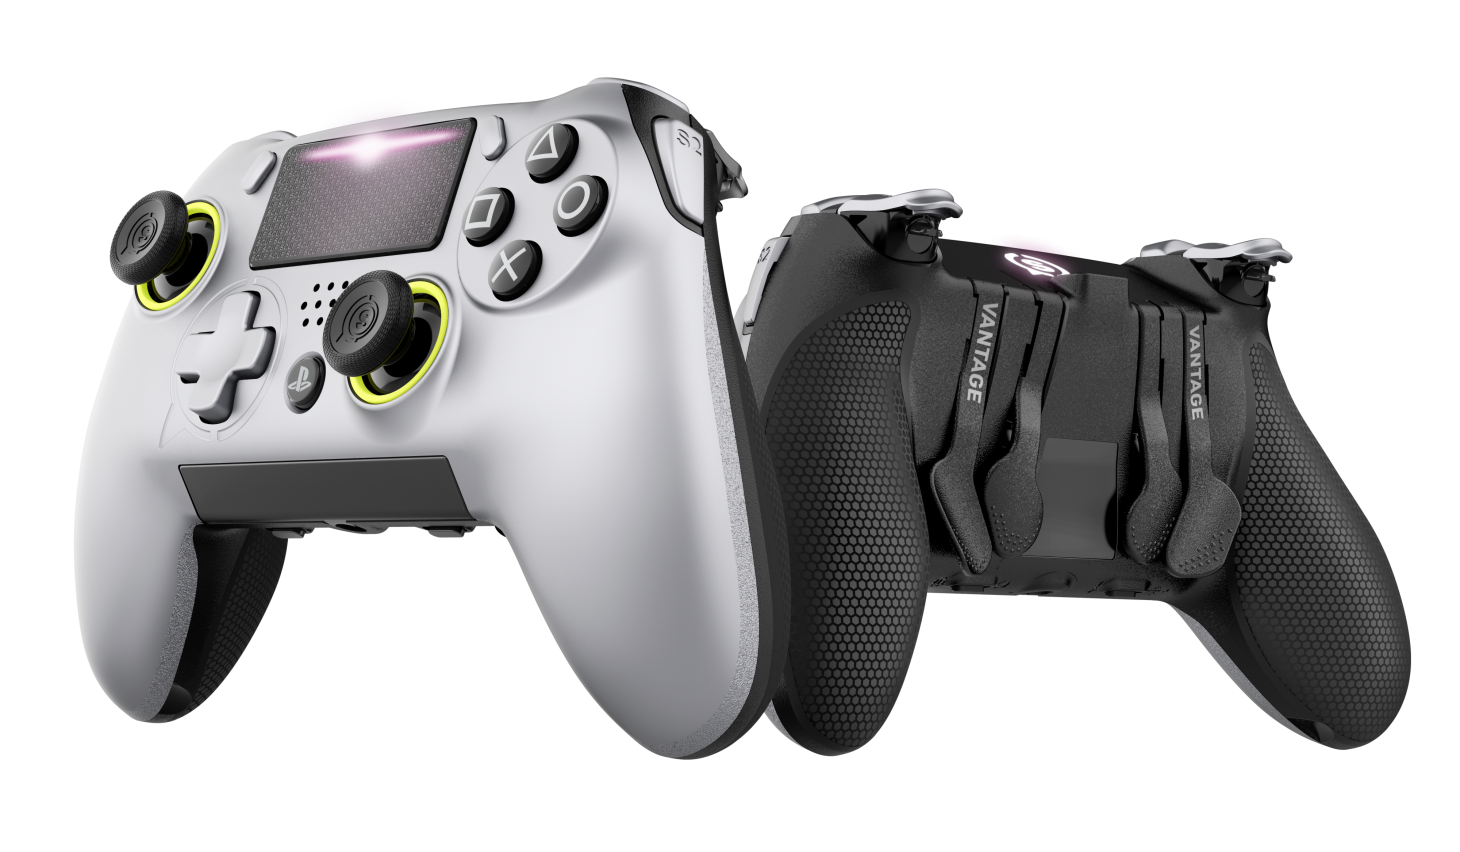 The Scuf Vantage PS4 Controller Is Insanely Good - Game Informer